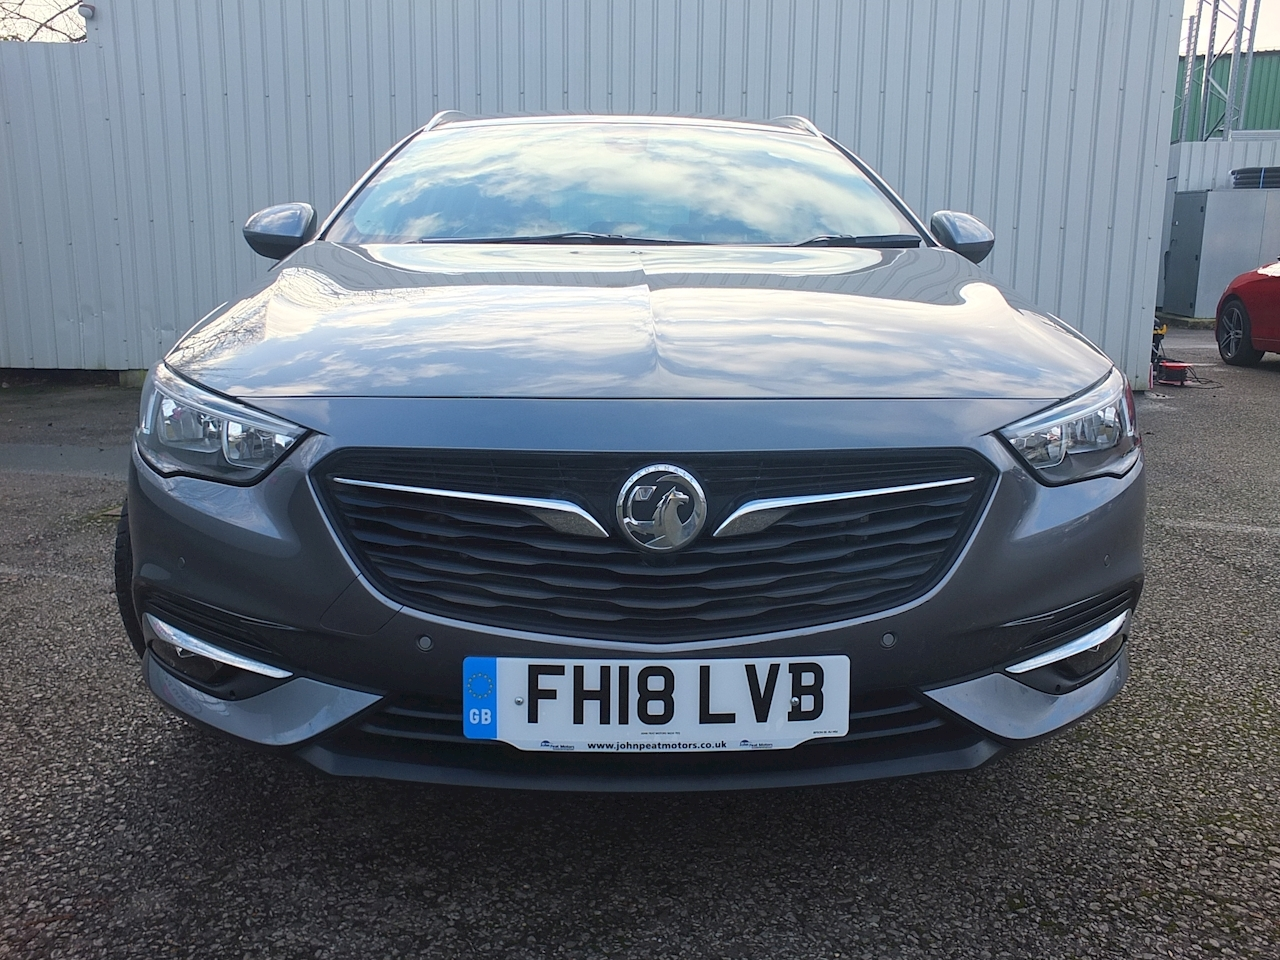 Insignia Sports Tourer Sri Nav Estate 2.0 Manual Diesel